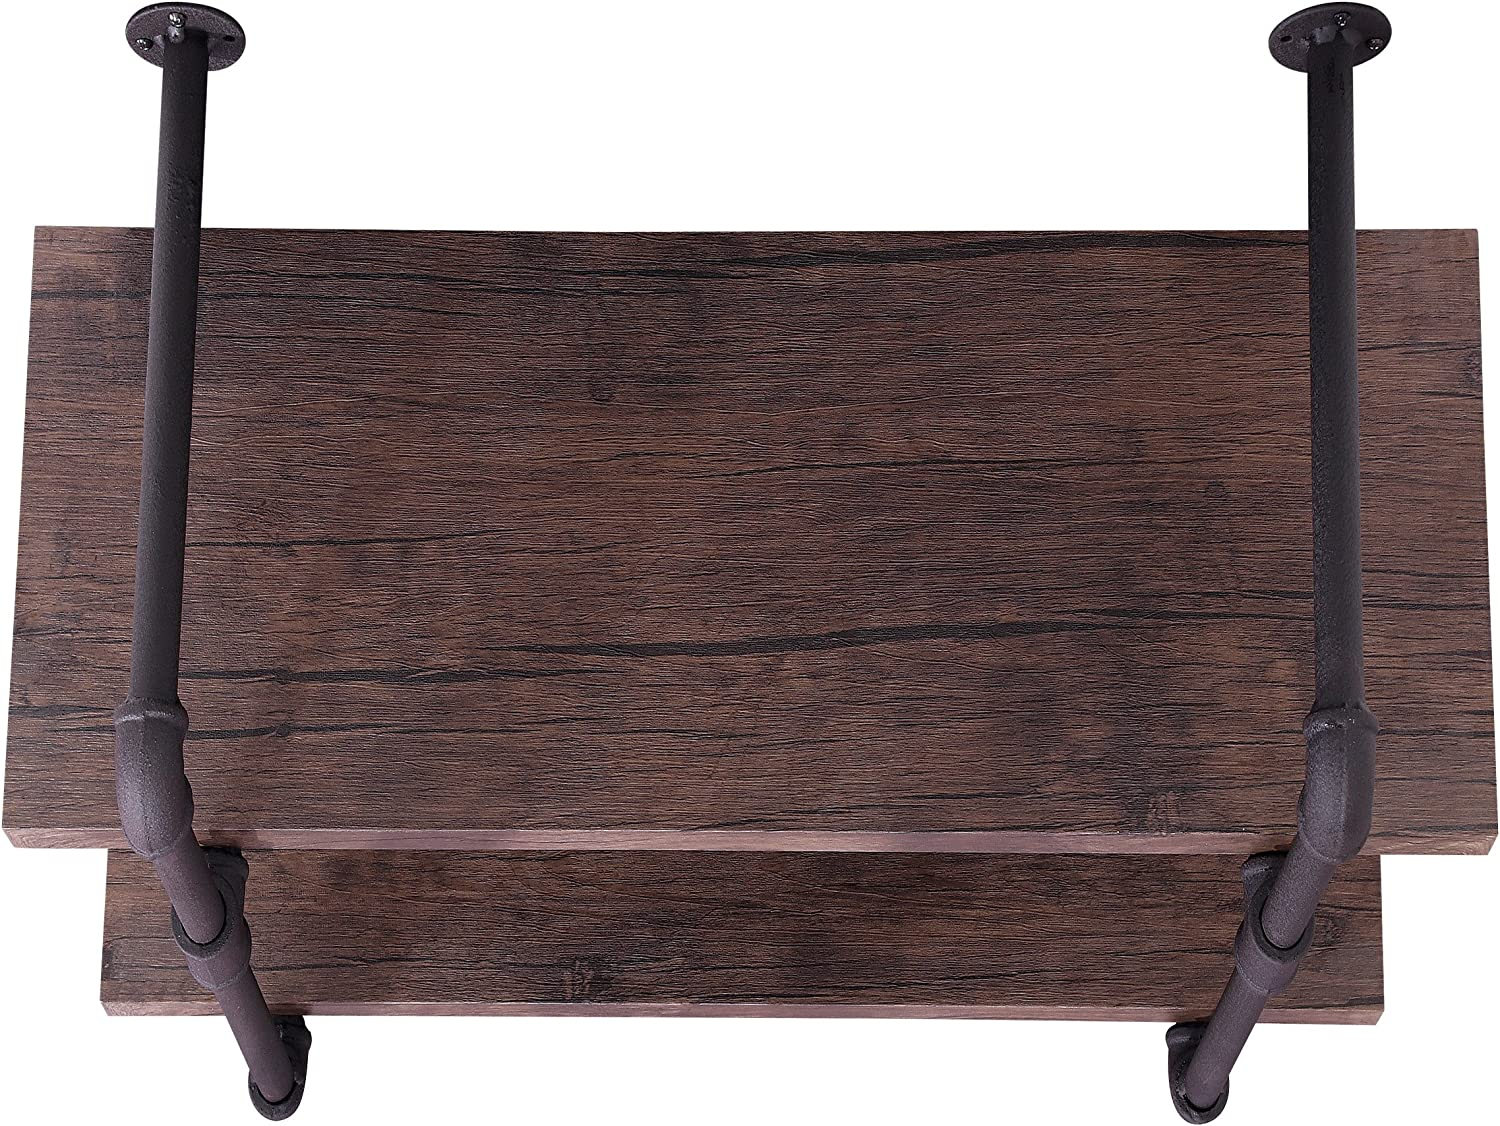 Christopher Knight Home Caden Industrial Two Tier Faux Wood Wall-Mounted Shelf, Finish, Dark Brown + Texture Brown